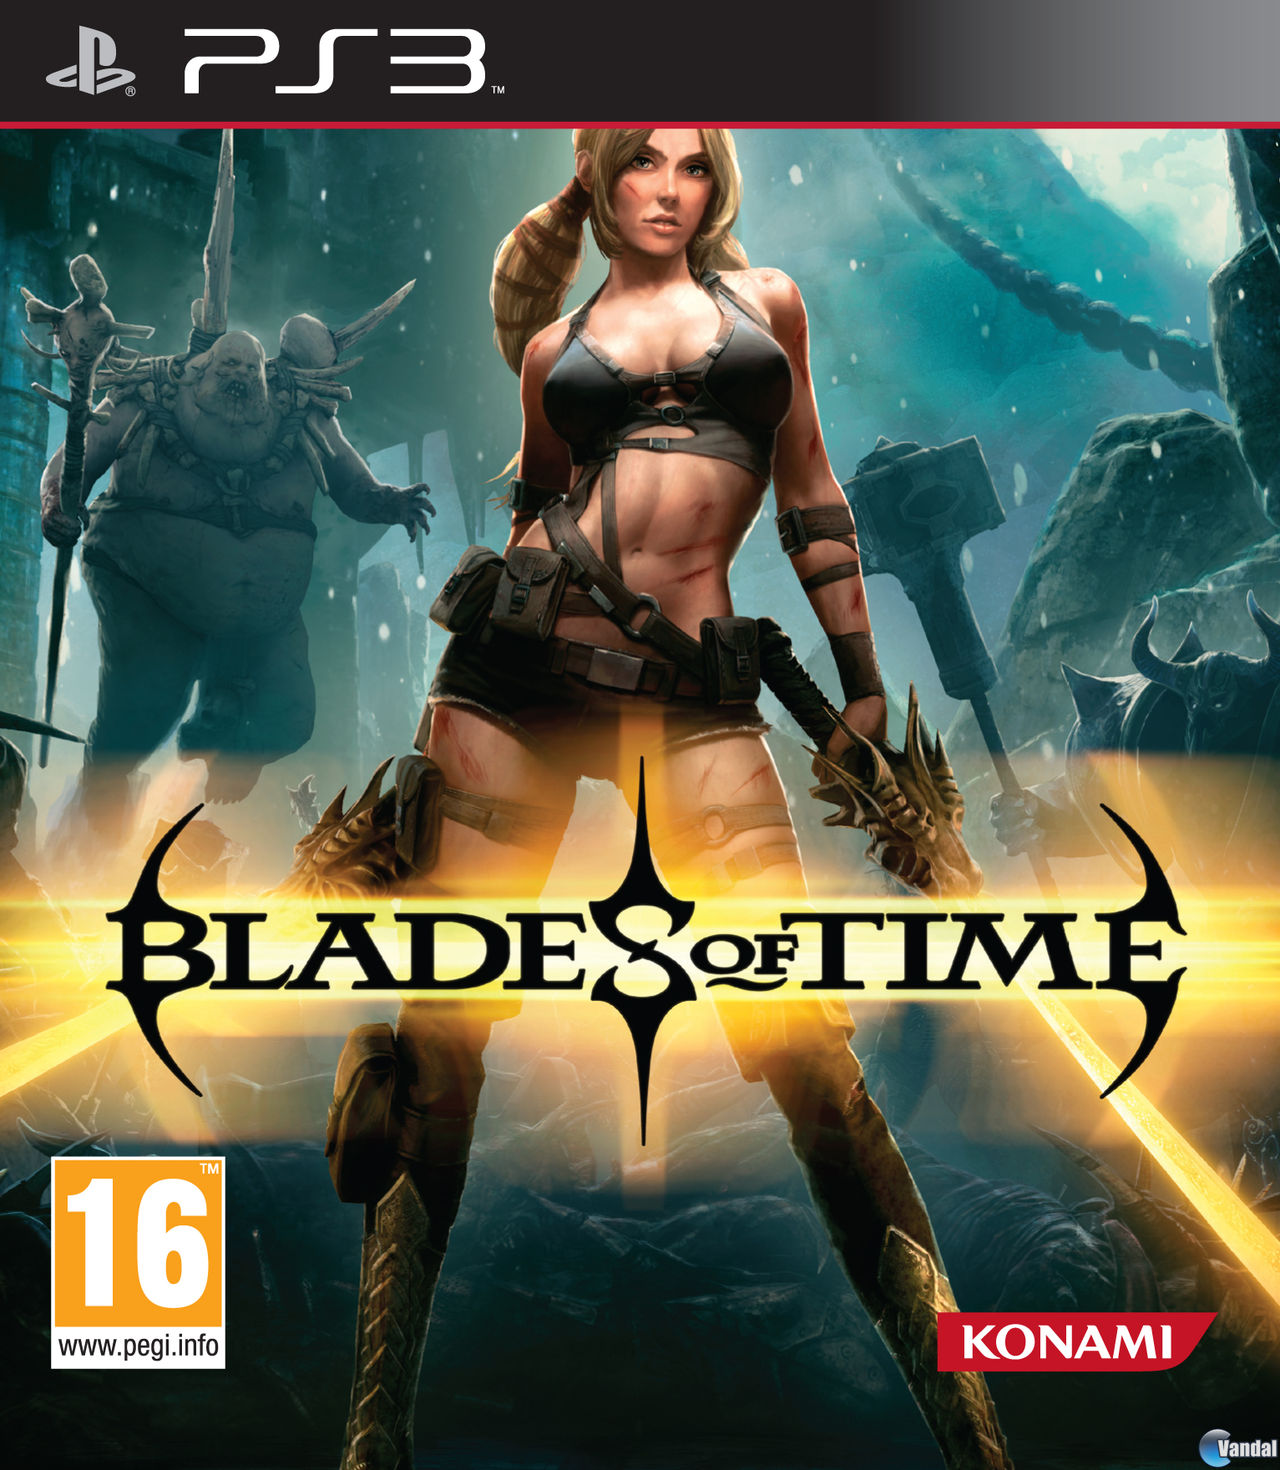 Blades of Time Xbox Ps3 Ps4 Pc jtag rgh dvd iso Xbox360 Wii Nintendo Mac Linux